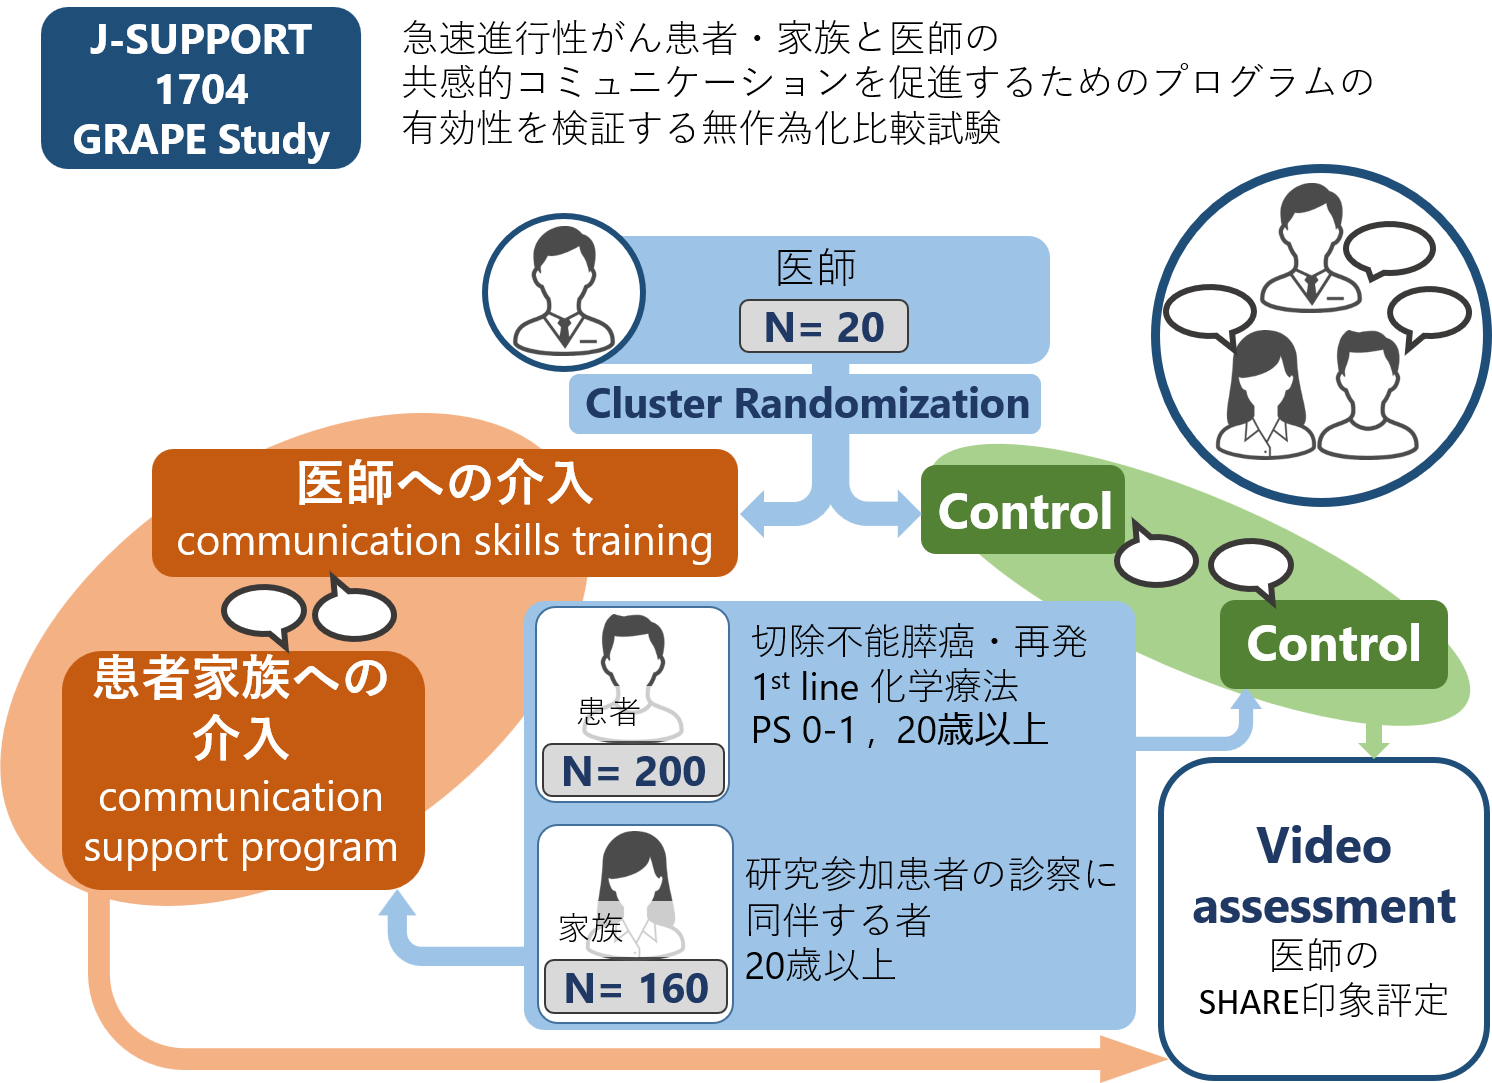 J-SUPPORT研究1704